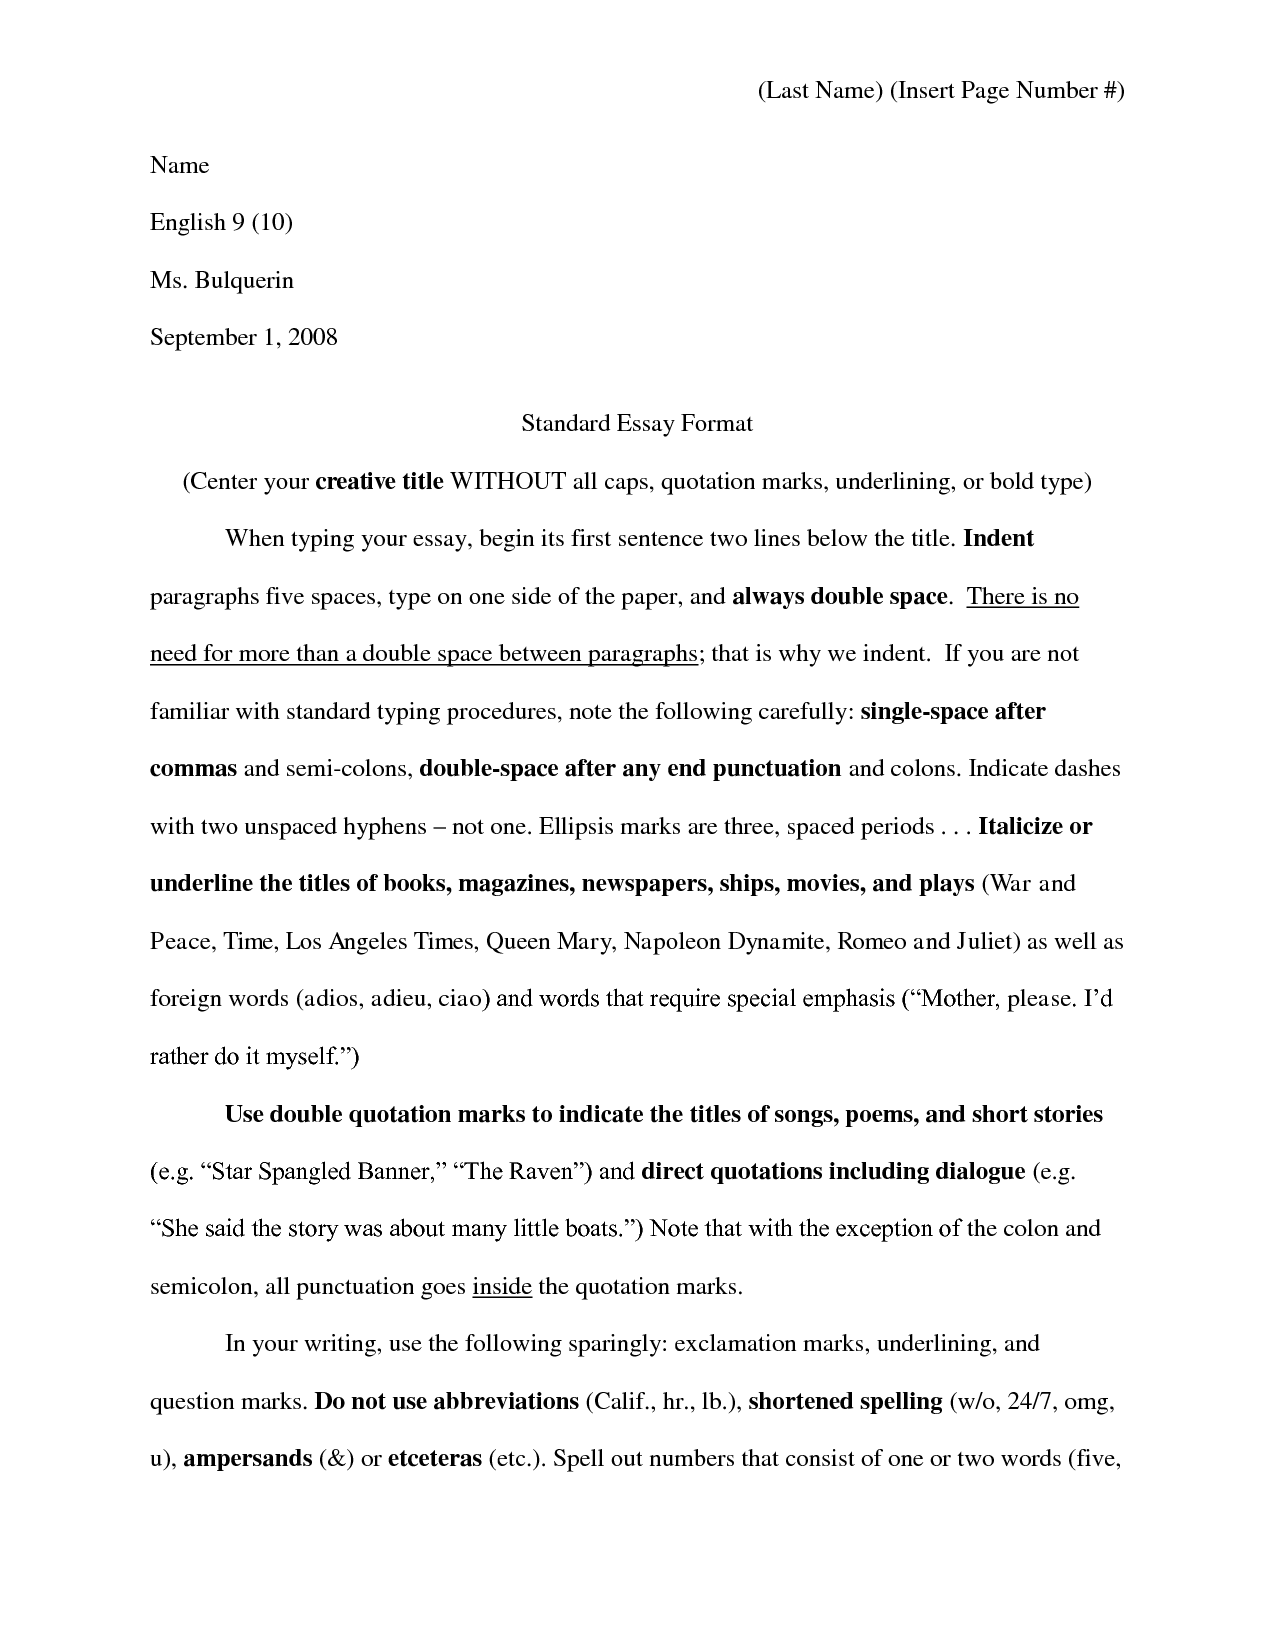 007 Format Of An Essay Awful Outline Apa Example Academic Conclusion Style Full